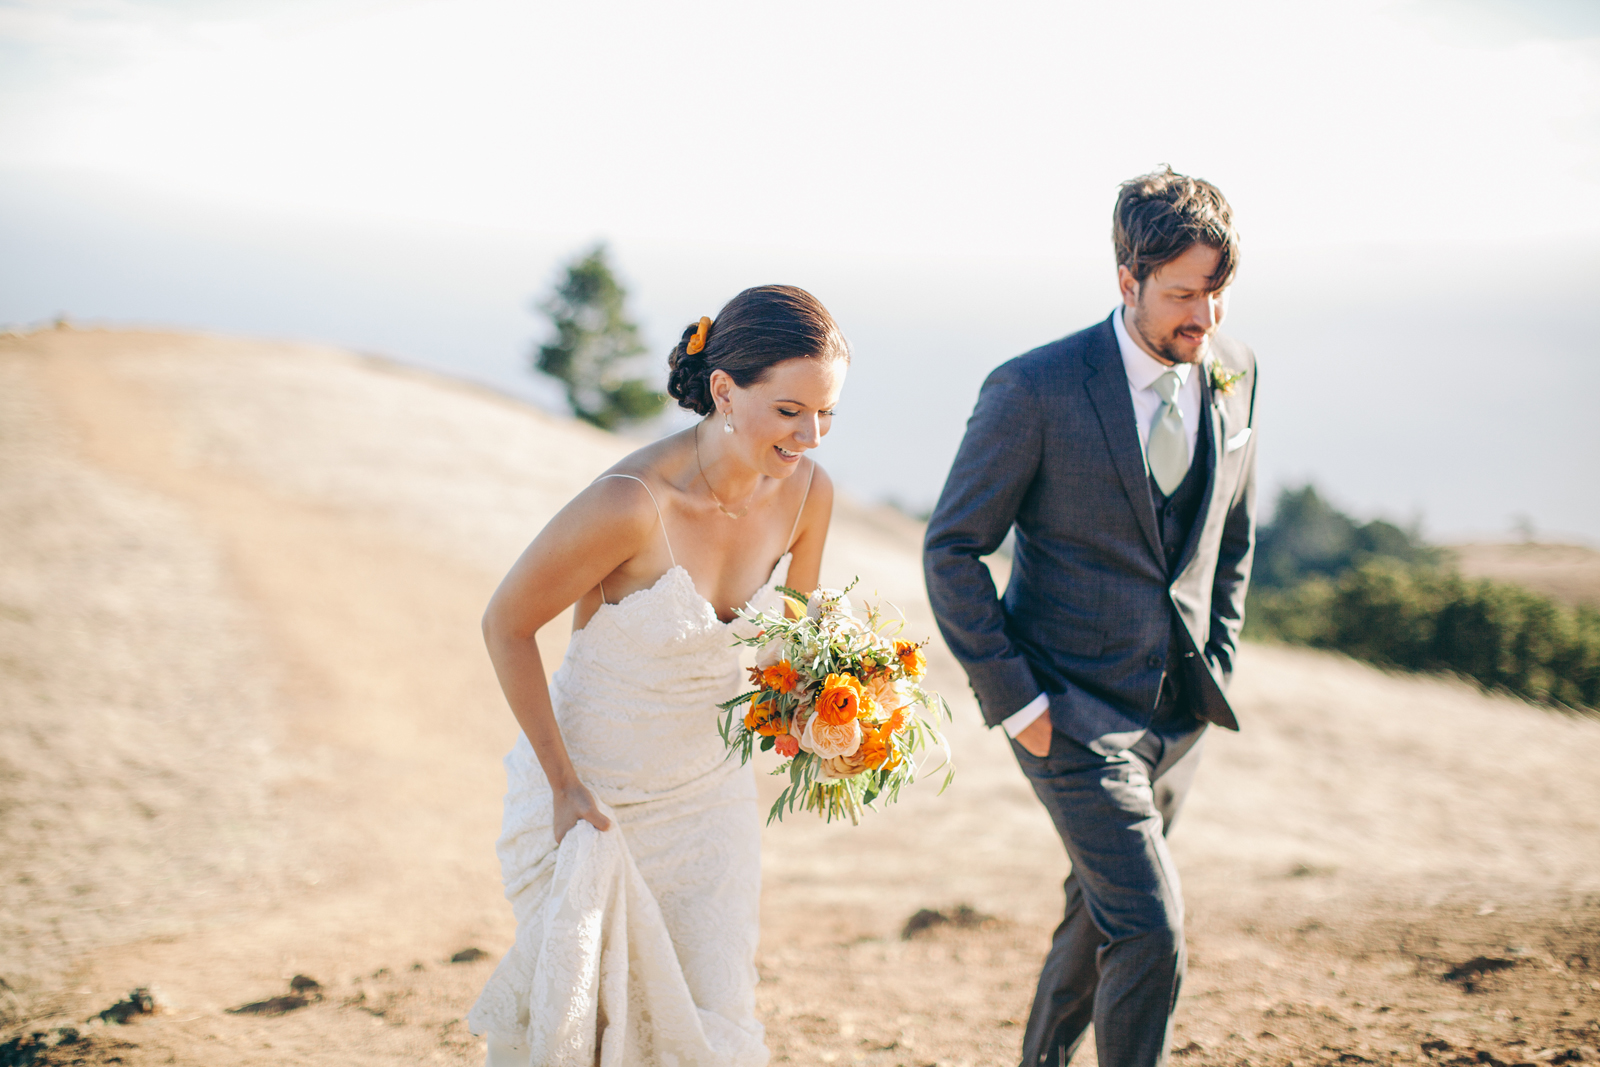 mt_tam_wedding_photography_marin_zac_katie_ebony_siovhan_bokeh_photography_43.jpg